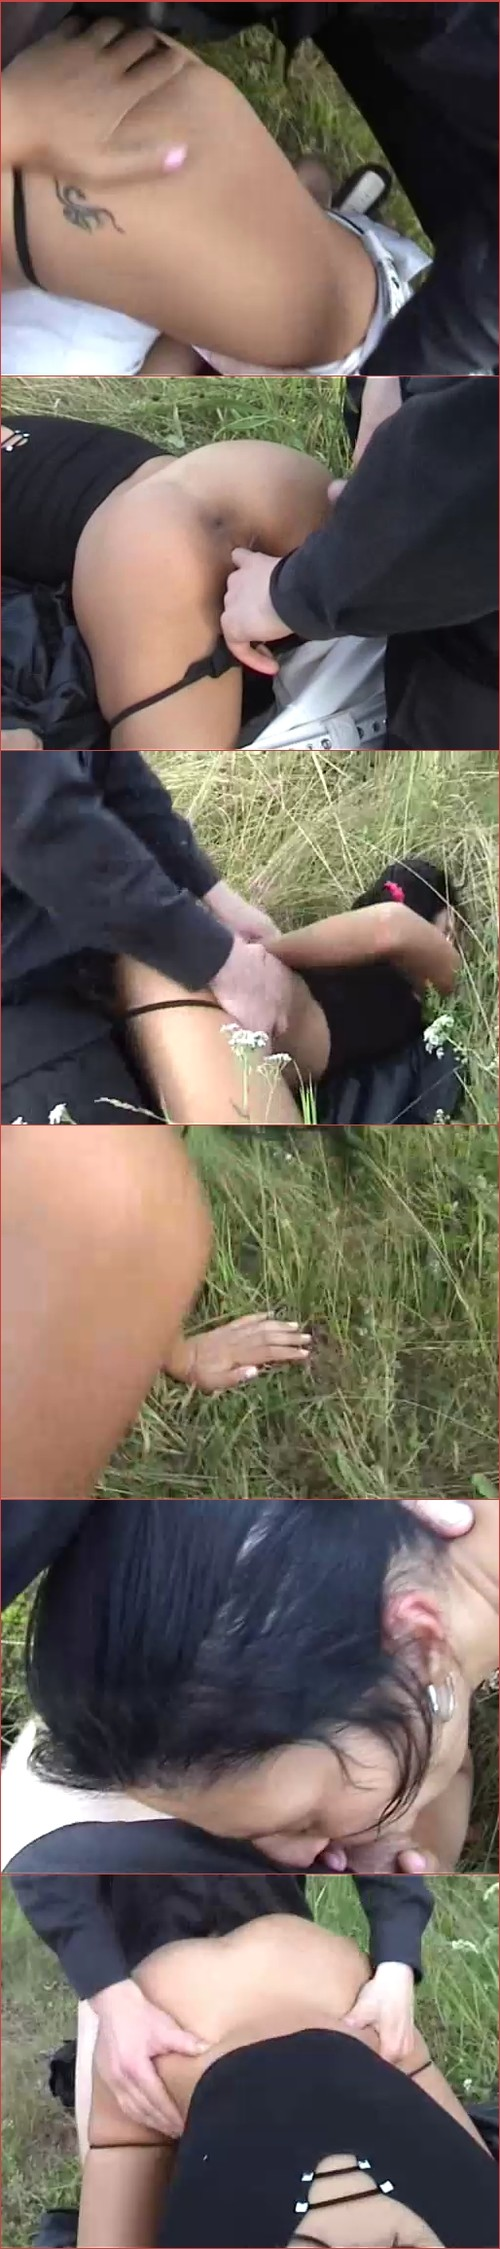 Sexy Teen hitchhiker gets brutally R@ped in the woods bobkina